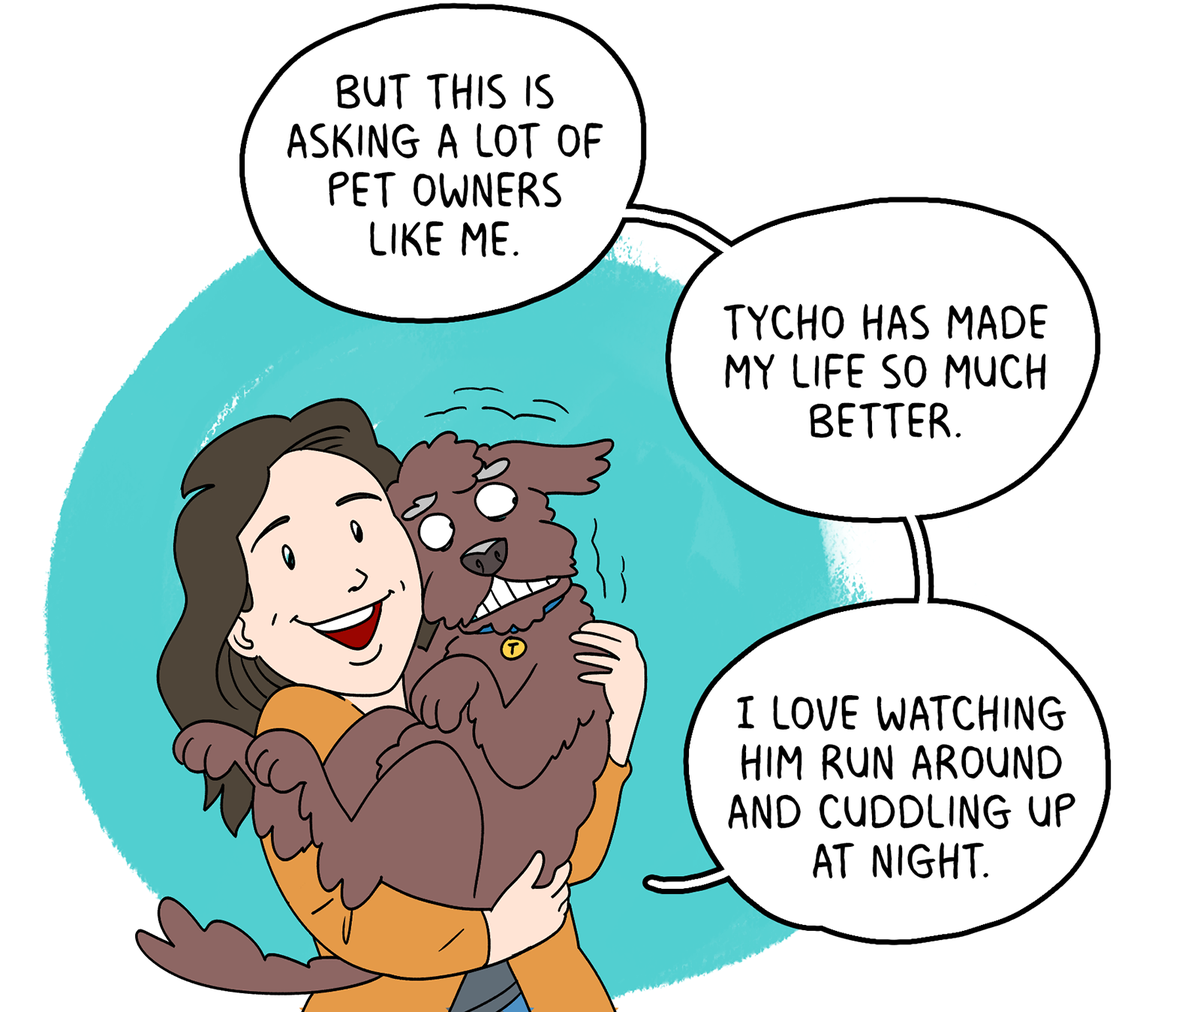 But this is asking a lot of pet owners like me. Tycho has made my life so much better. I love watching him run around and cuddling up at night.